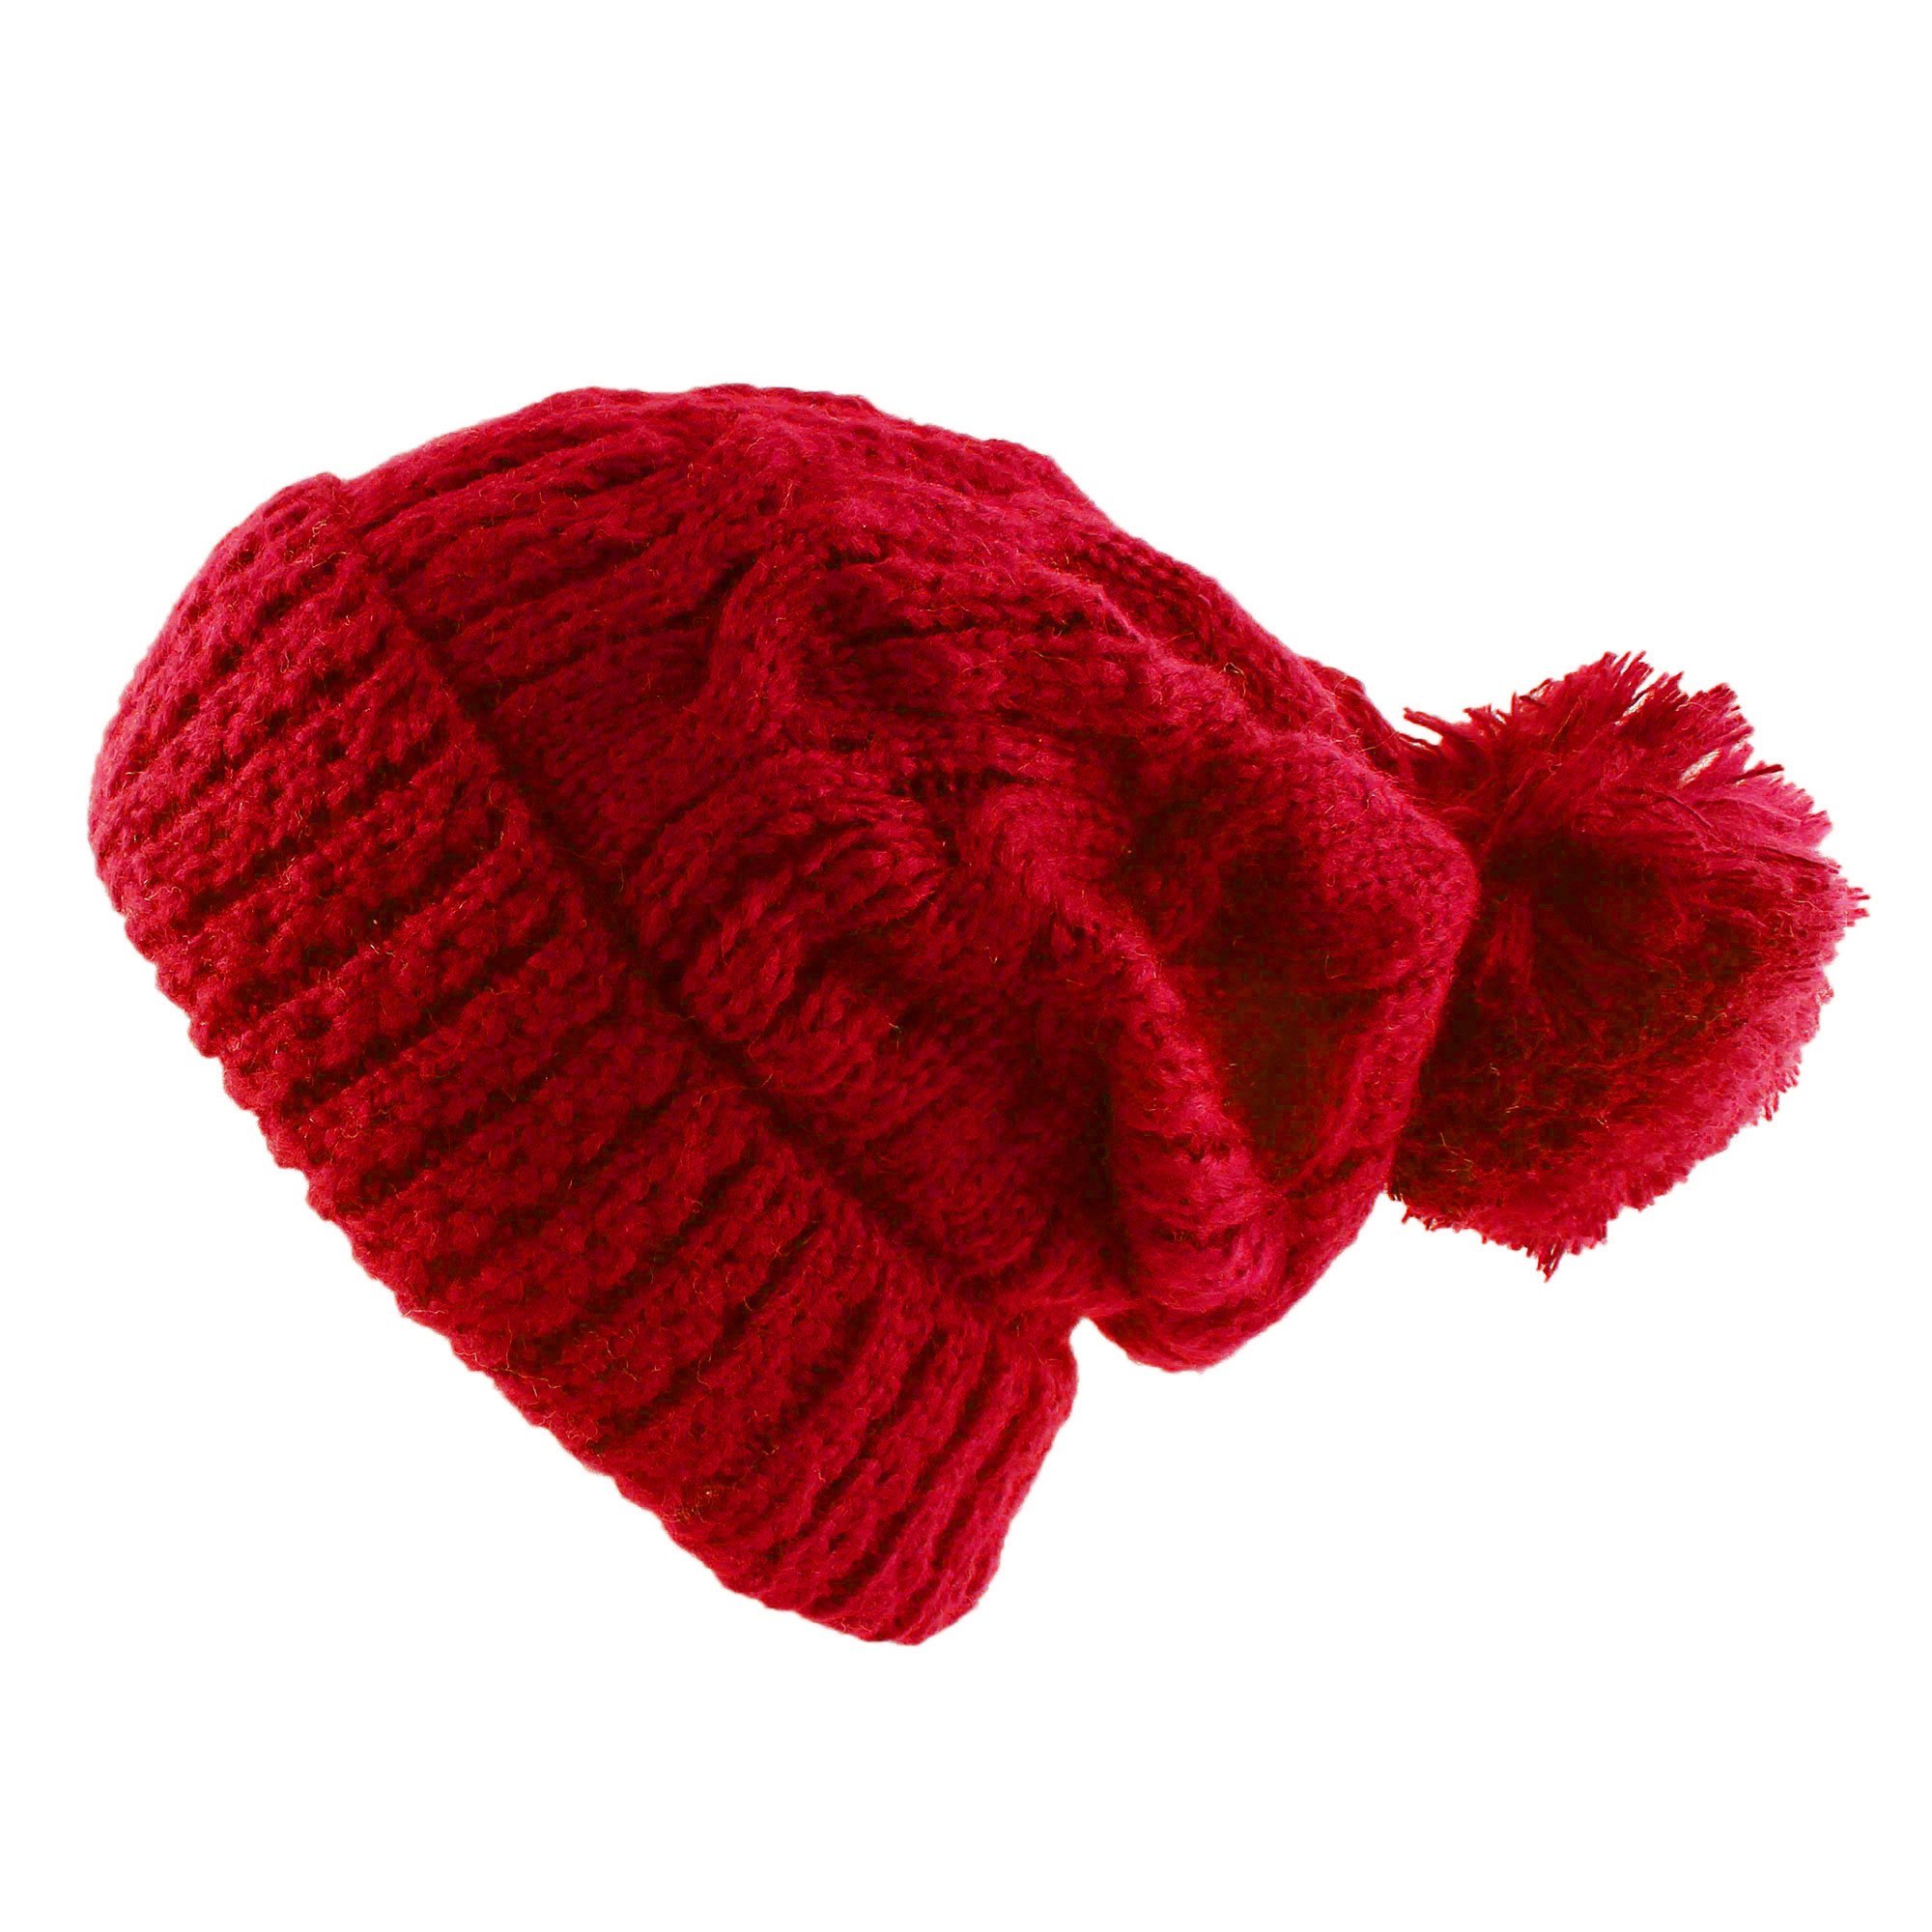 Morehats Large Pom Pom Soft Crochet Thick Knit Slouchy Beanie Winter Ski Hat - Red